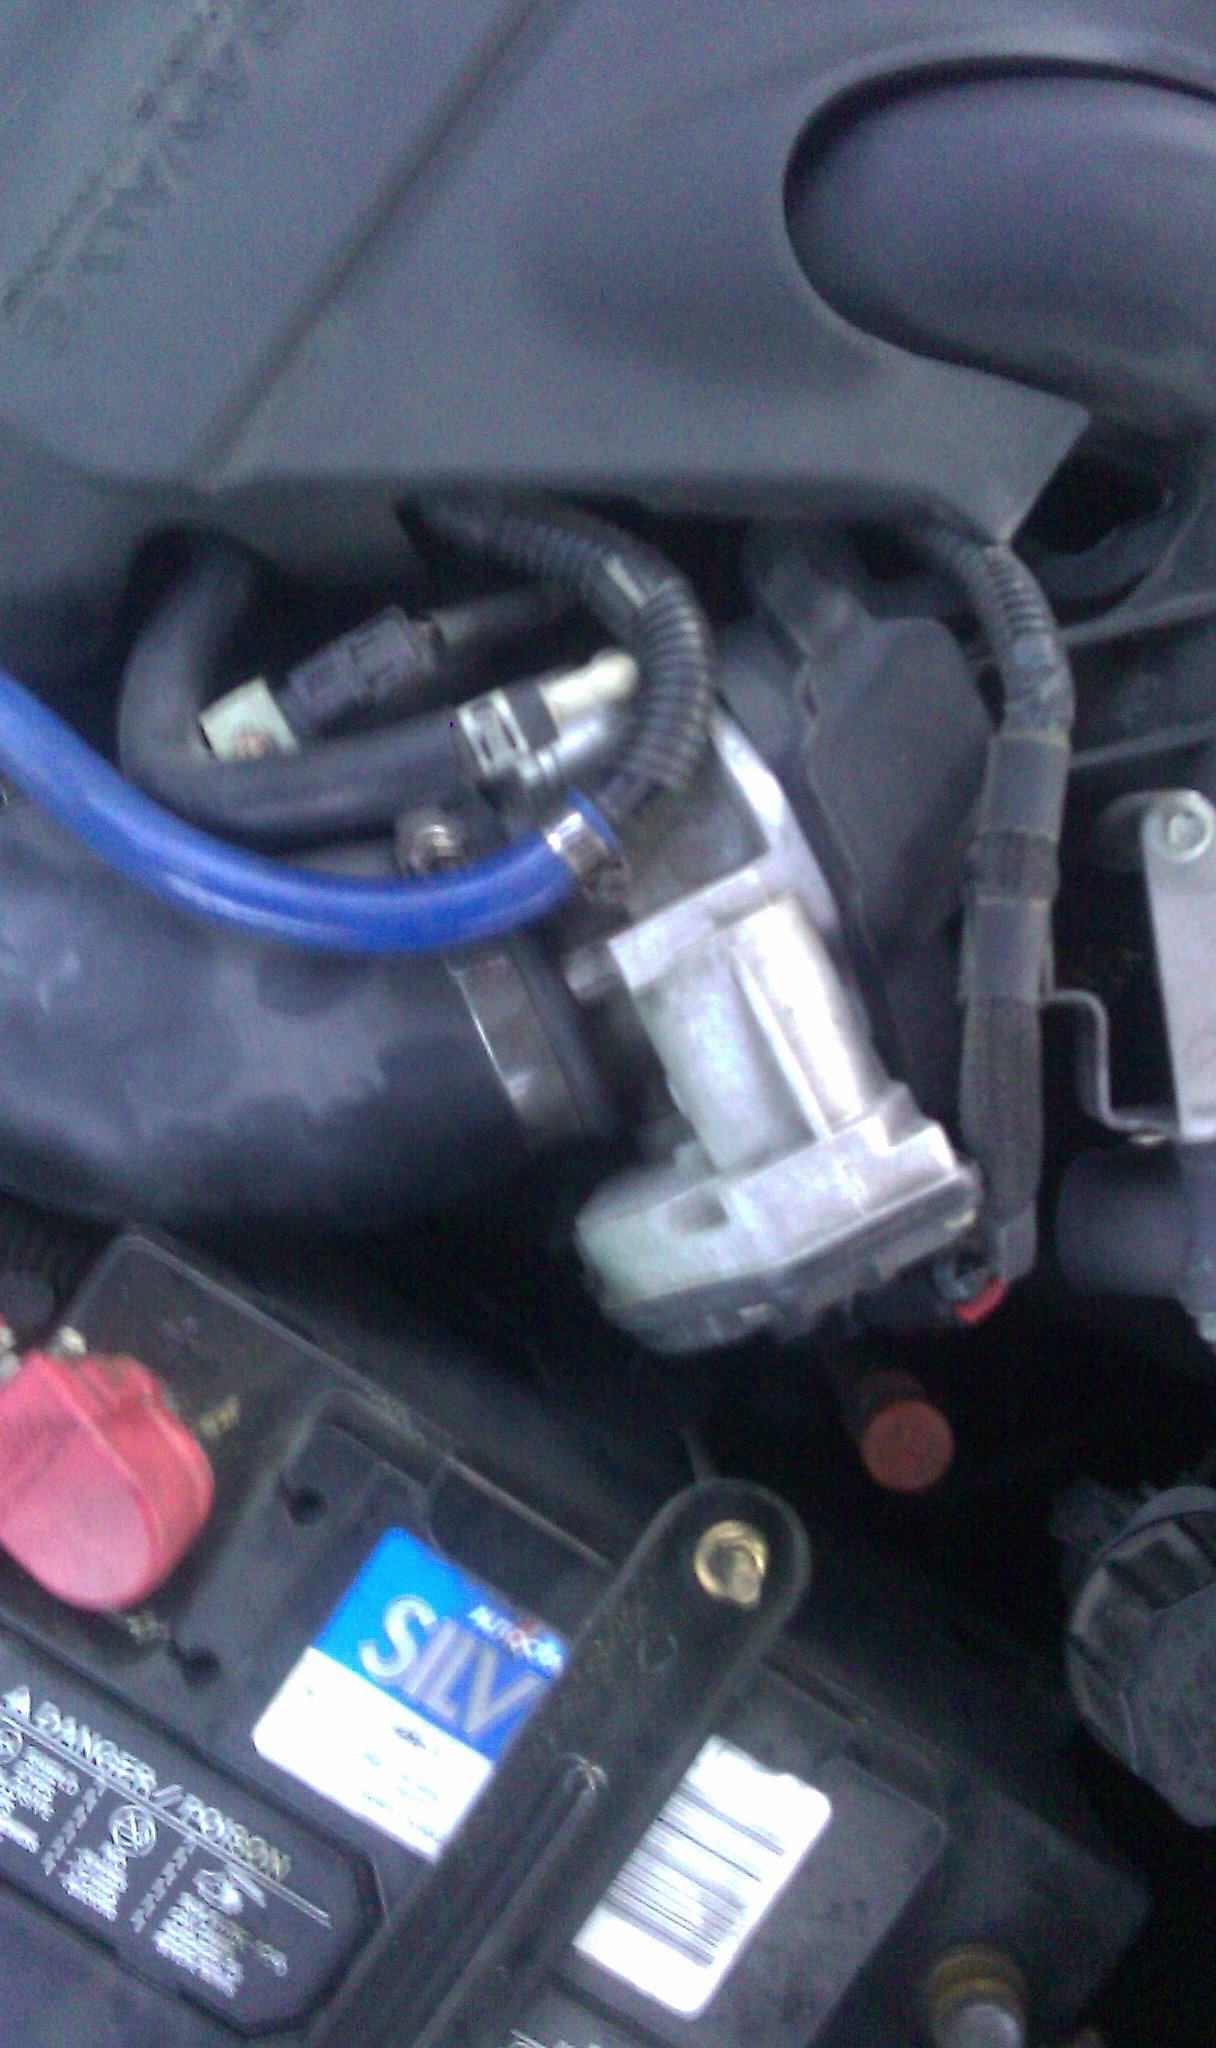 Mazda 6 check engine light on with P0171 code